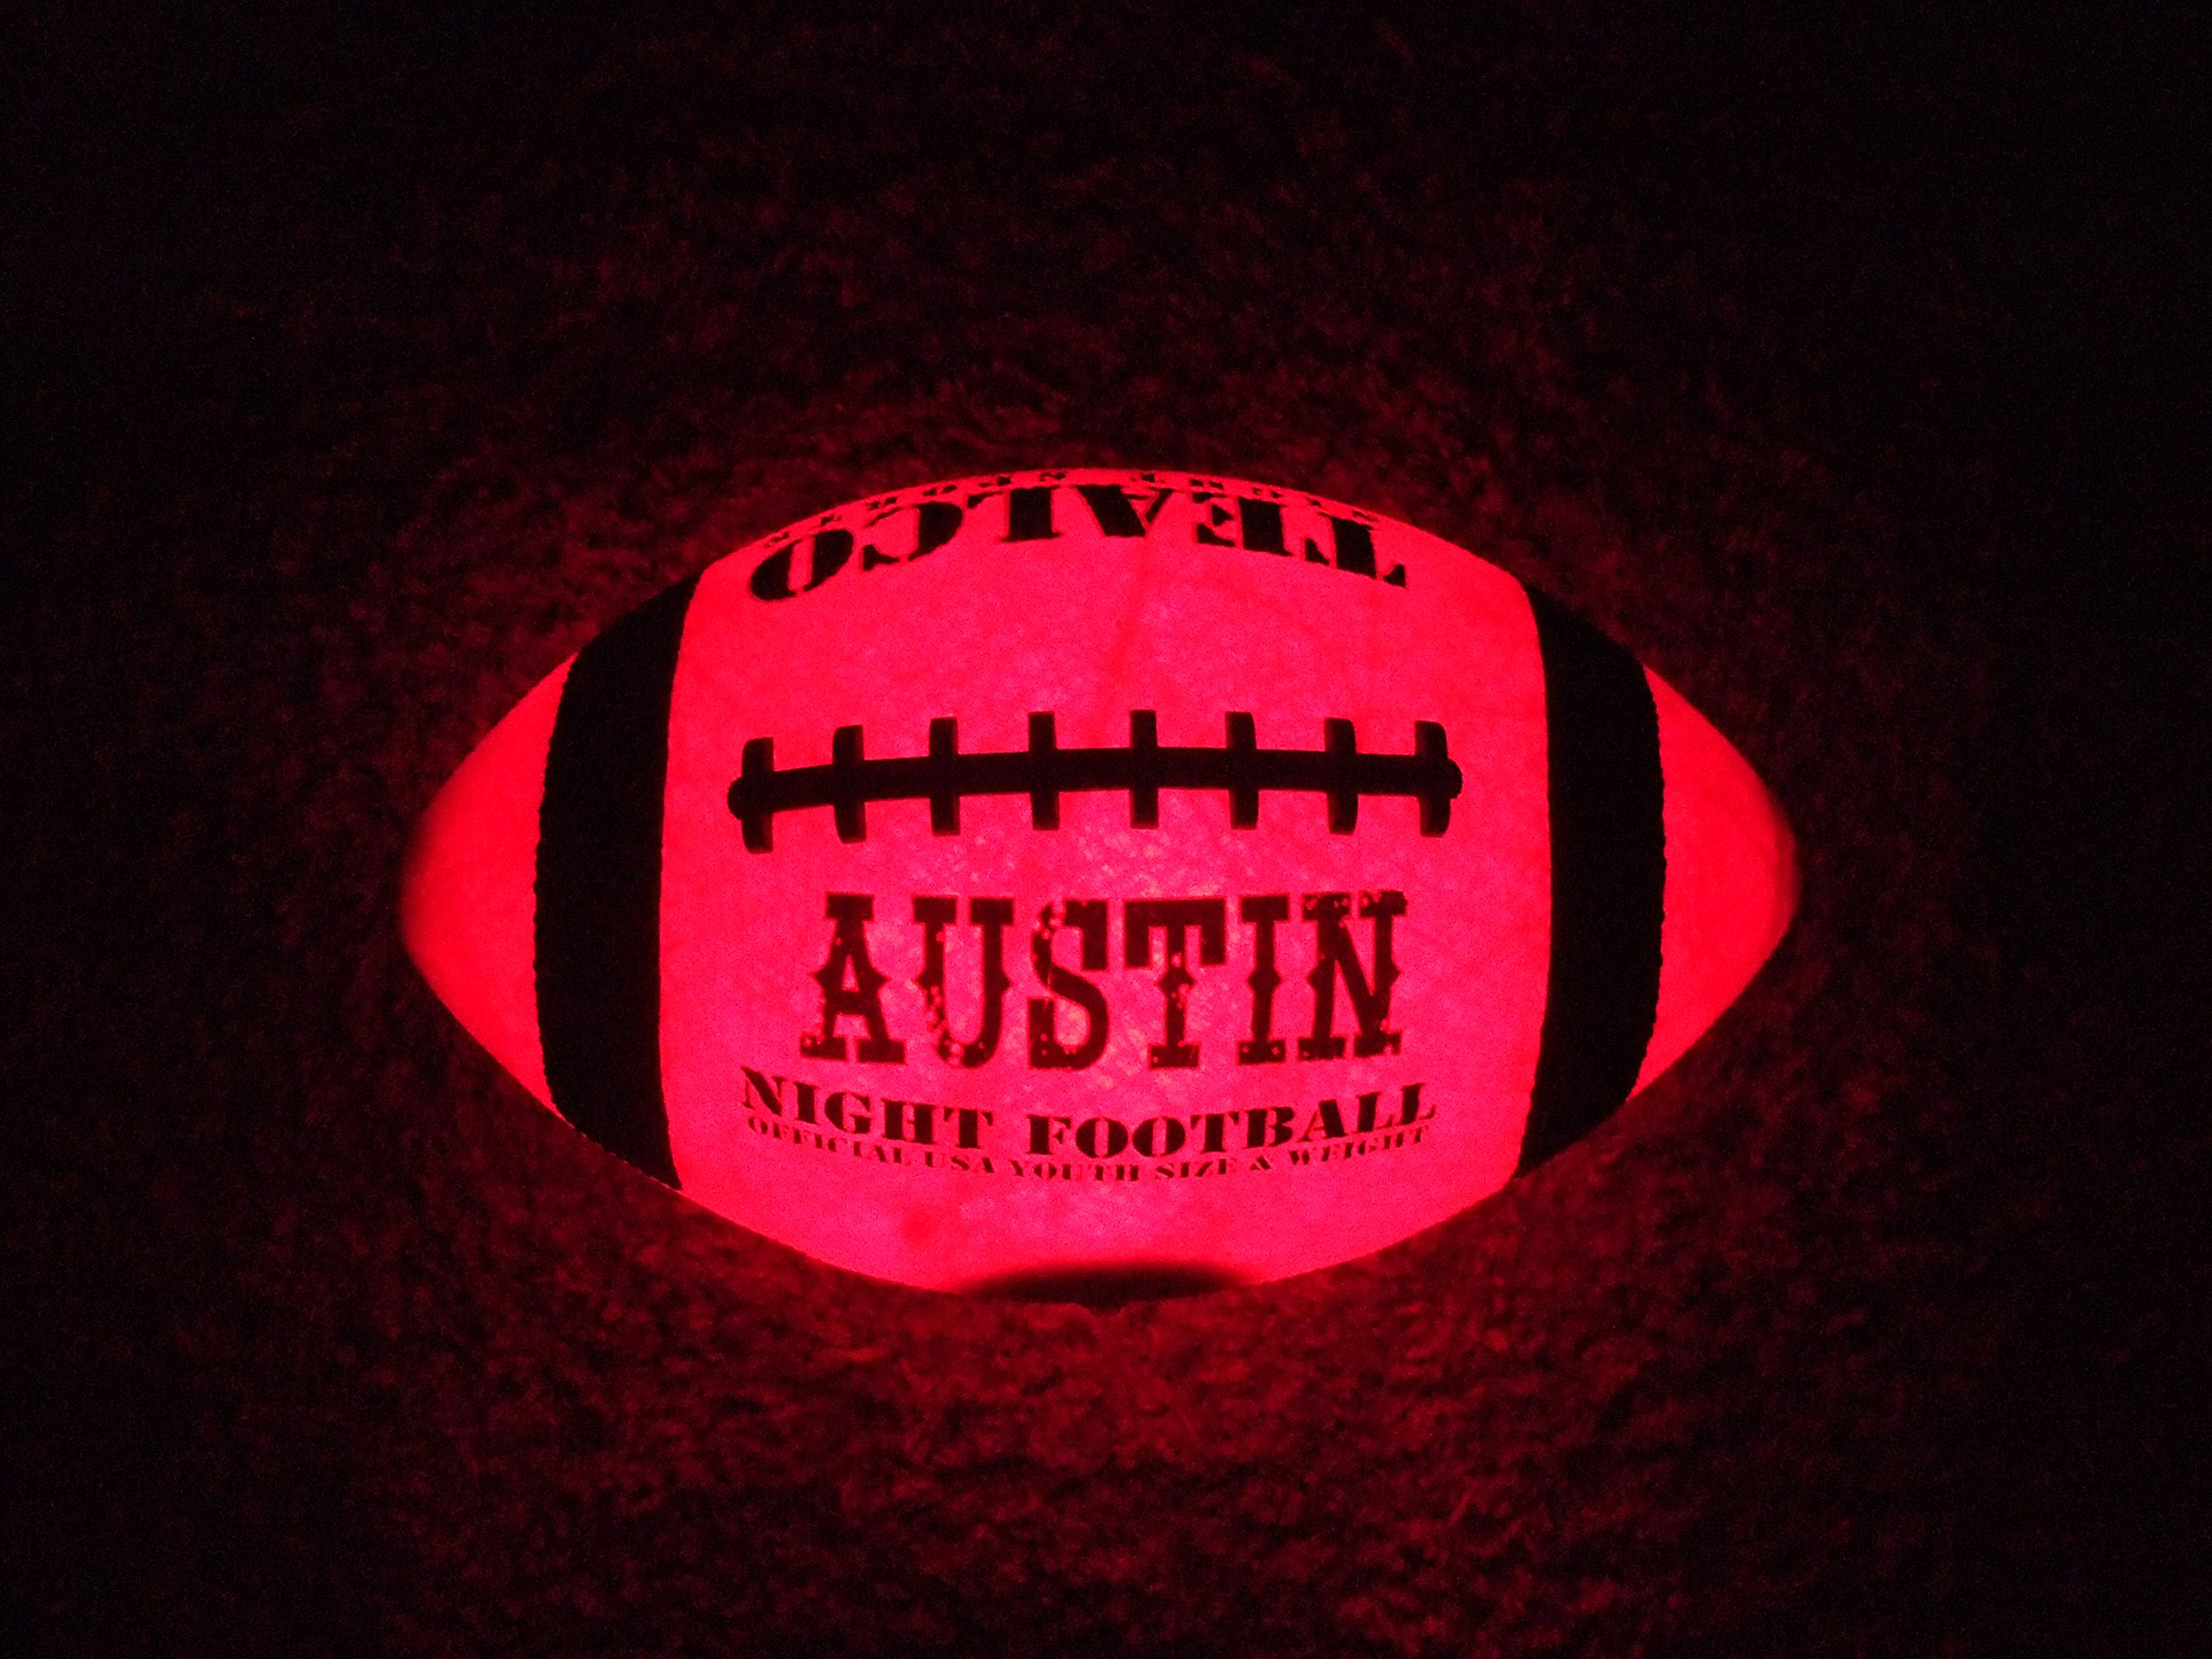 TealCo Custom Light-up Football (Adult Size, Correct Weight, LED-Lighted Glow in The Dark!)